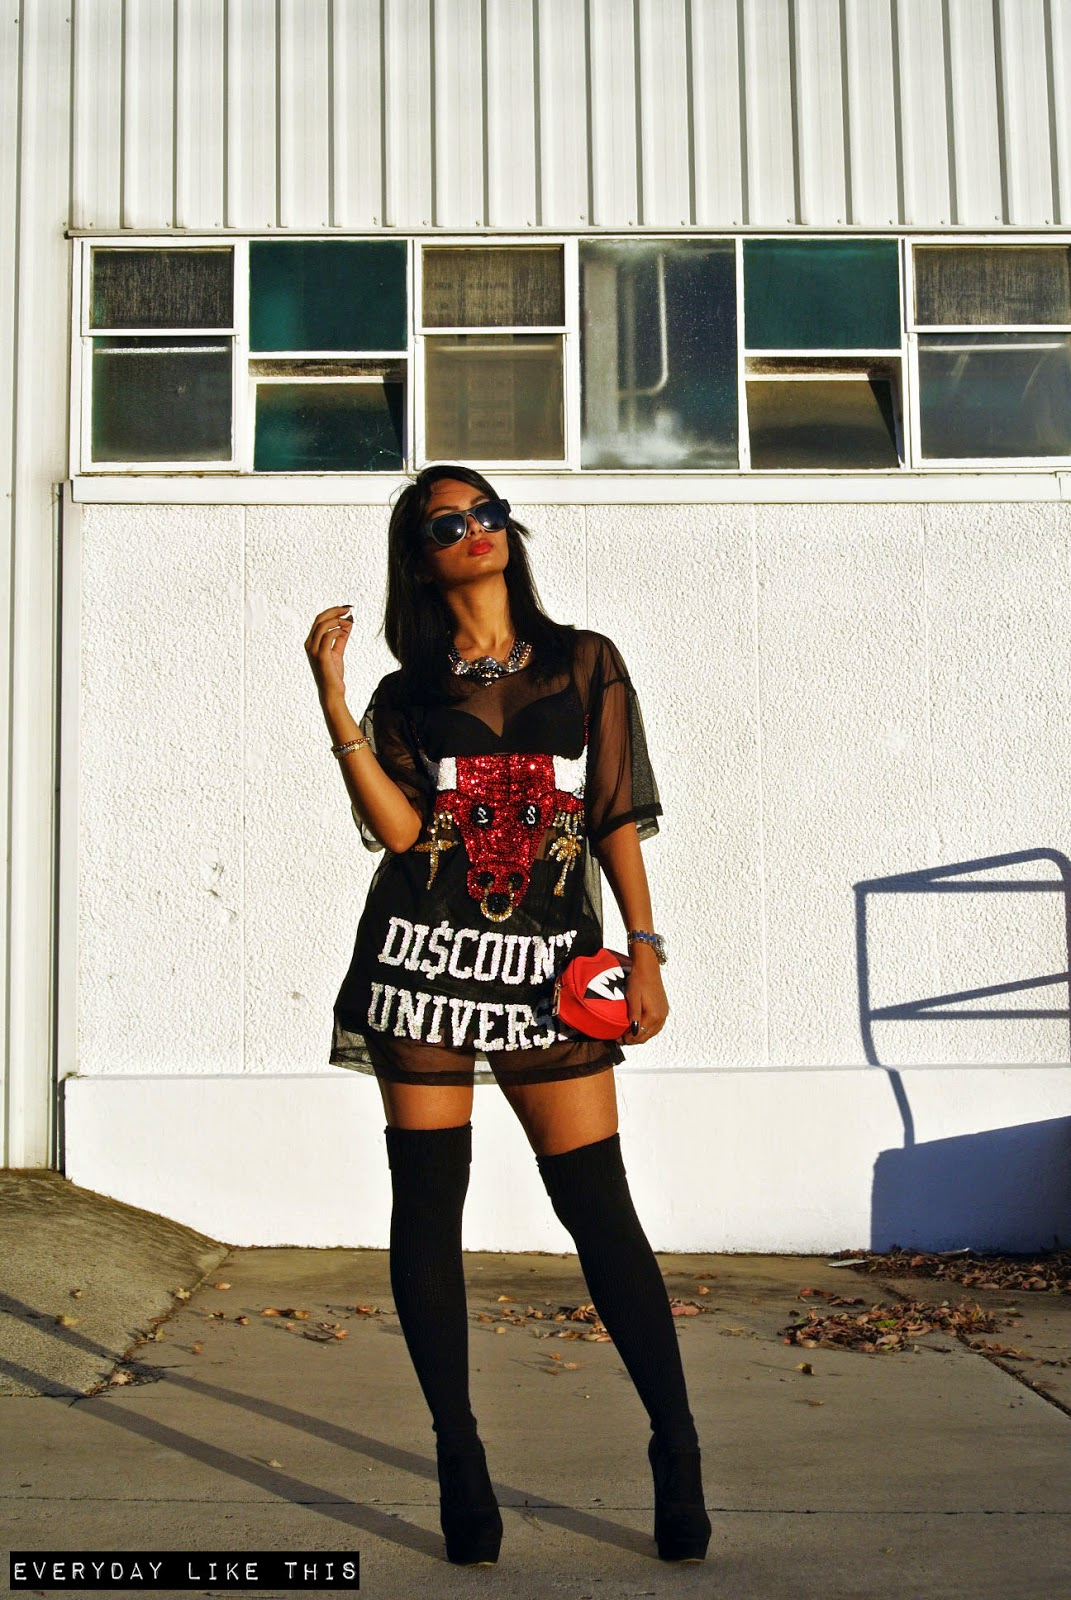 Discount Universe 'No Bulls Tee' Grandma Funk Vintage leather shorts American Apparel thigh high socks Tony Bianco Boots Asos Clutch Slapsee sunnies melbourne fashion blogger